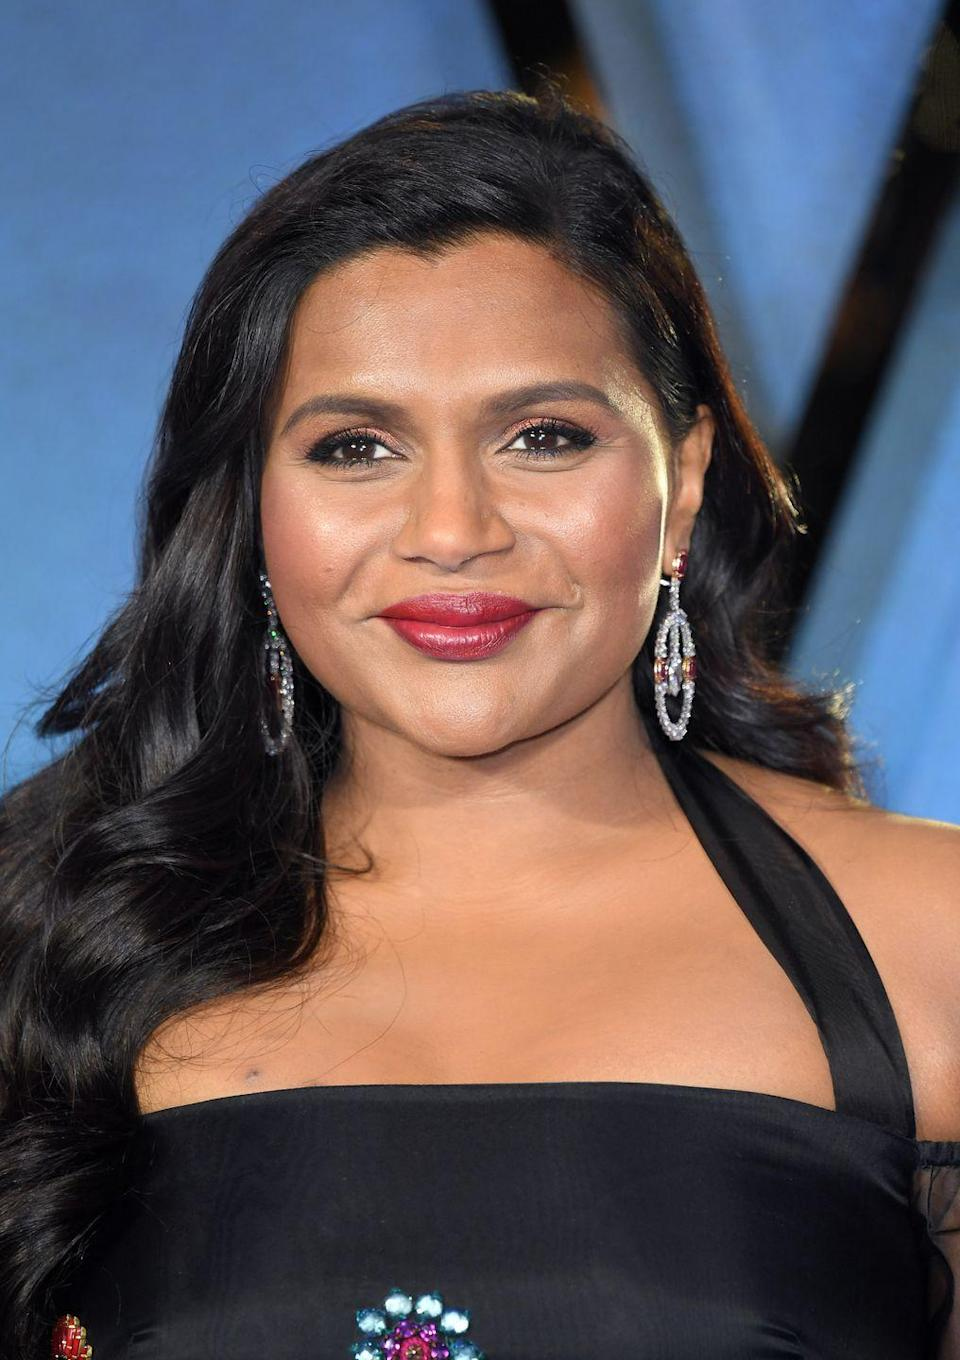 """<p>""""<a href=""""http://www.instyle.com/news/mindy-kaling-mom-guilt-single-parent"""" rel=""""nofollow noopener"""" target=""""_blank"""" data-ylk=""""slk:I've had to learn"""" class=""""link rapid-noclick-resp"""">I've had to learn</a> to release myself from mom guilt at least a couple times a day ... I'm also learning to feel better about asking for help, whether it's from family or hiring help. It's not profound, but I love my career and I don't want to make myself feel bad about pursuing both. Just cutting myself some slack has been very helpful for me."""" </p>"""